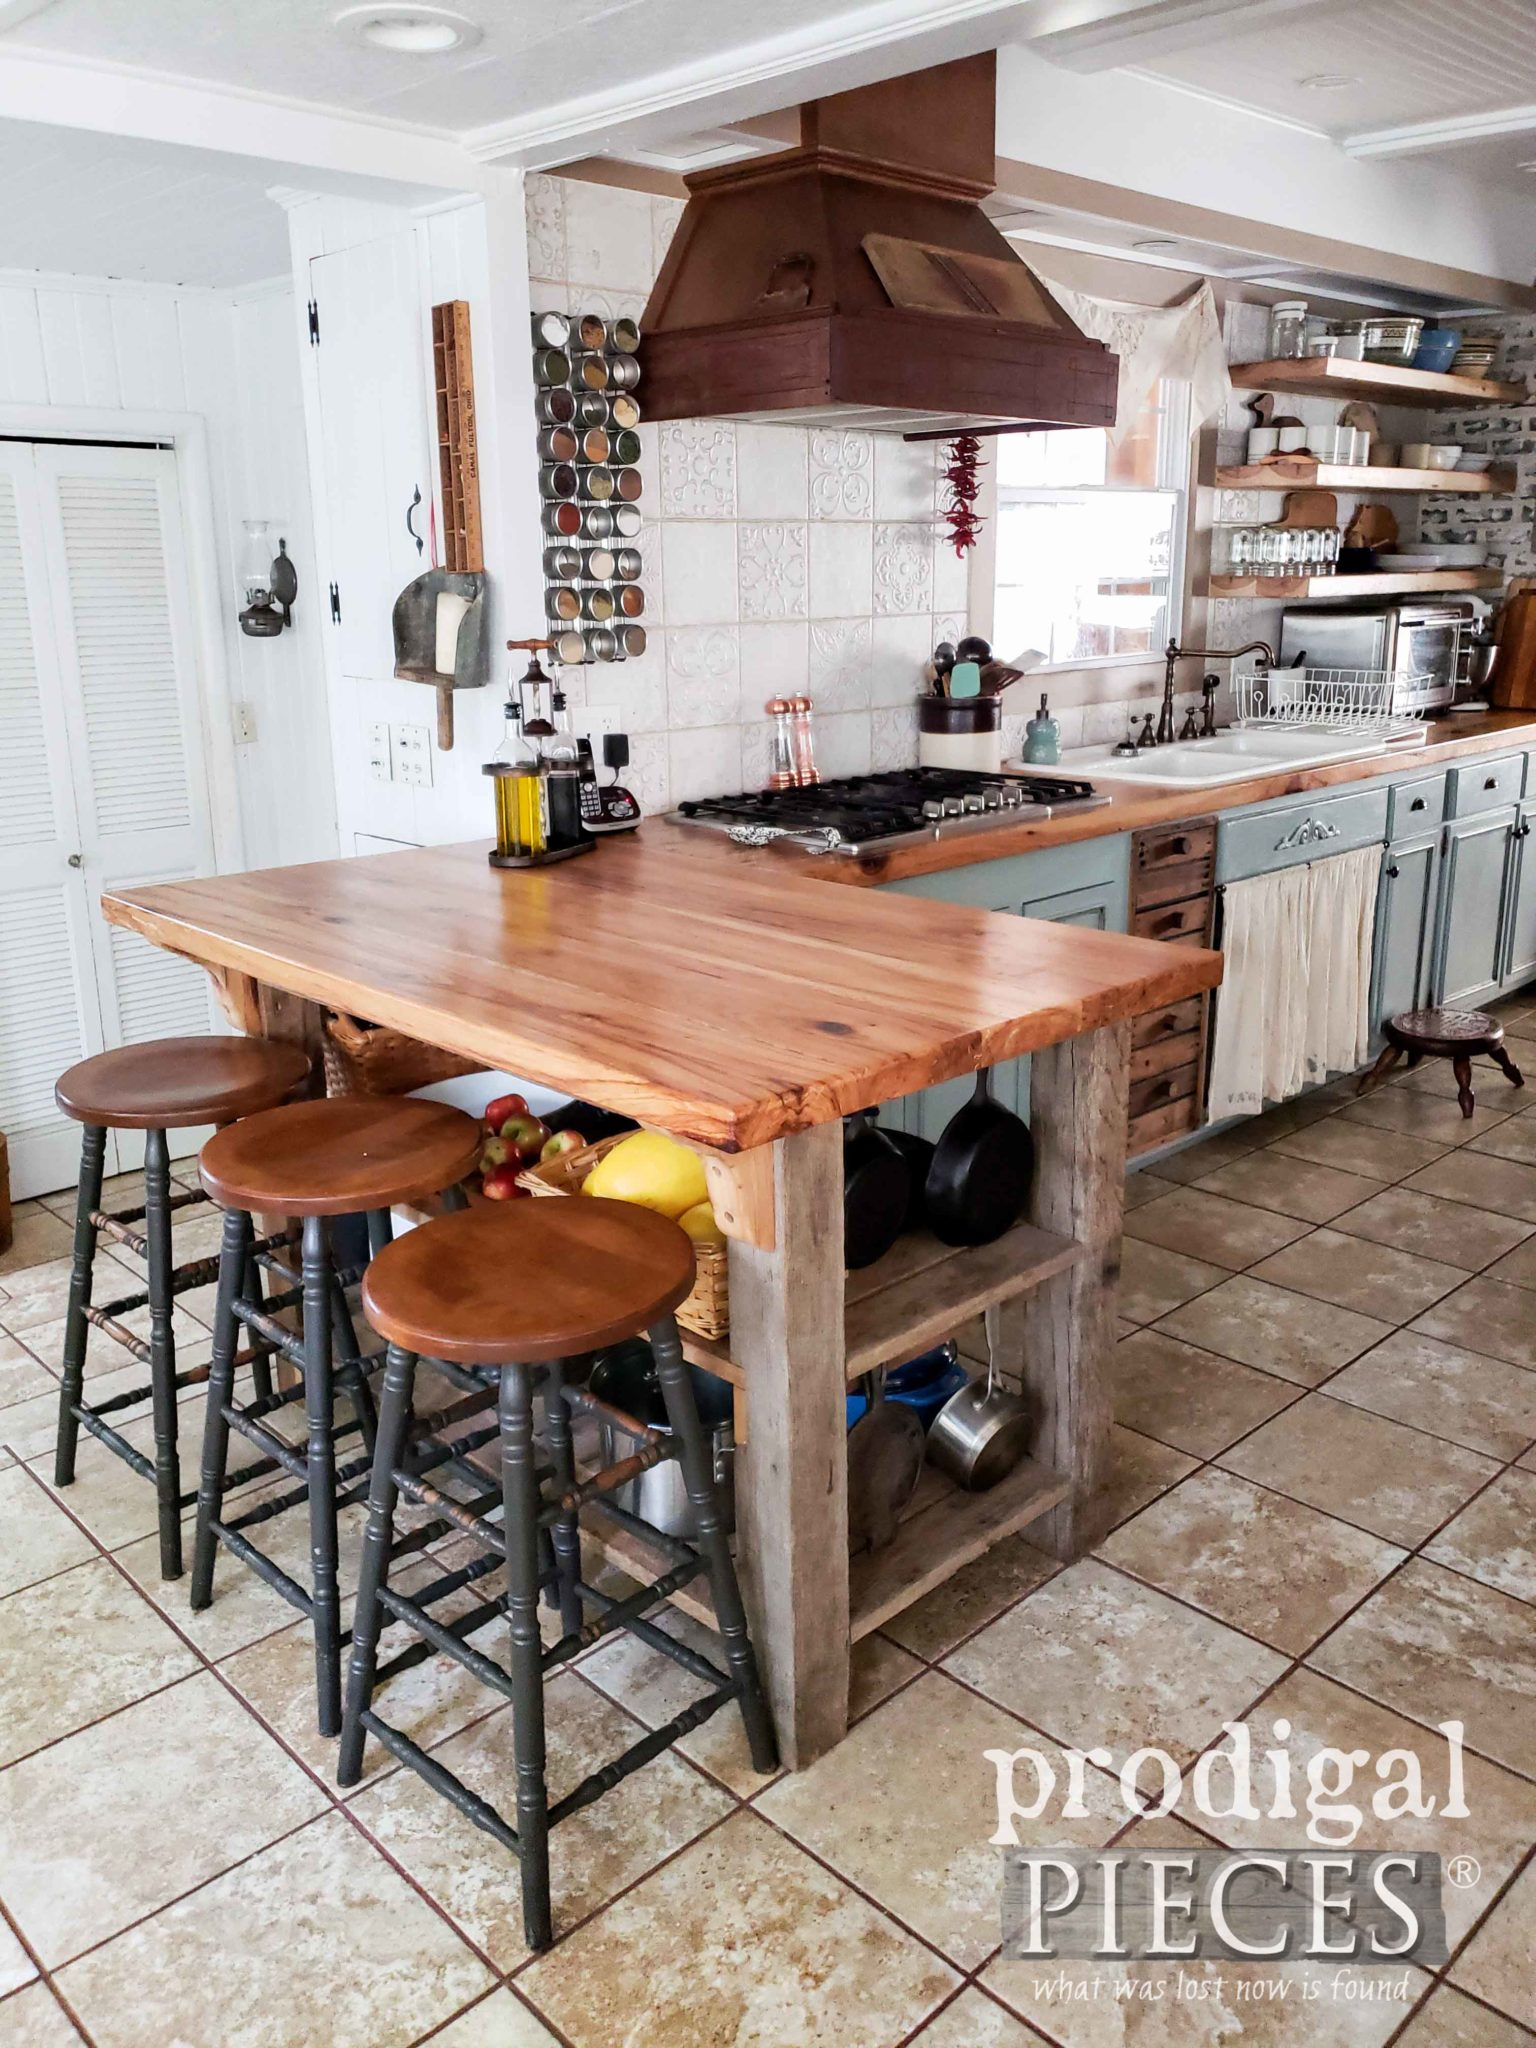 Reclaimed Kitchen Counter Made of 1800's Reclaimed Hickory by Prodigal Pieces | prodigalpieces.com